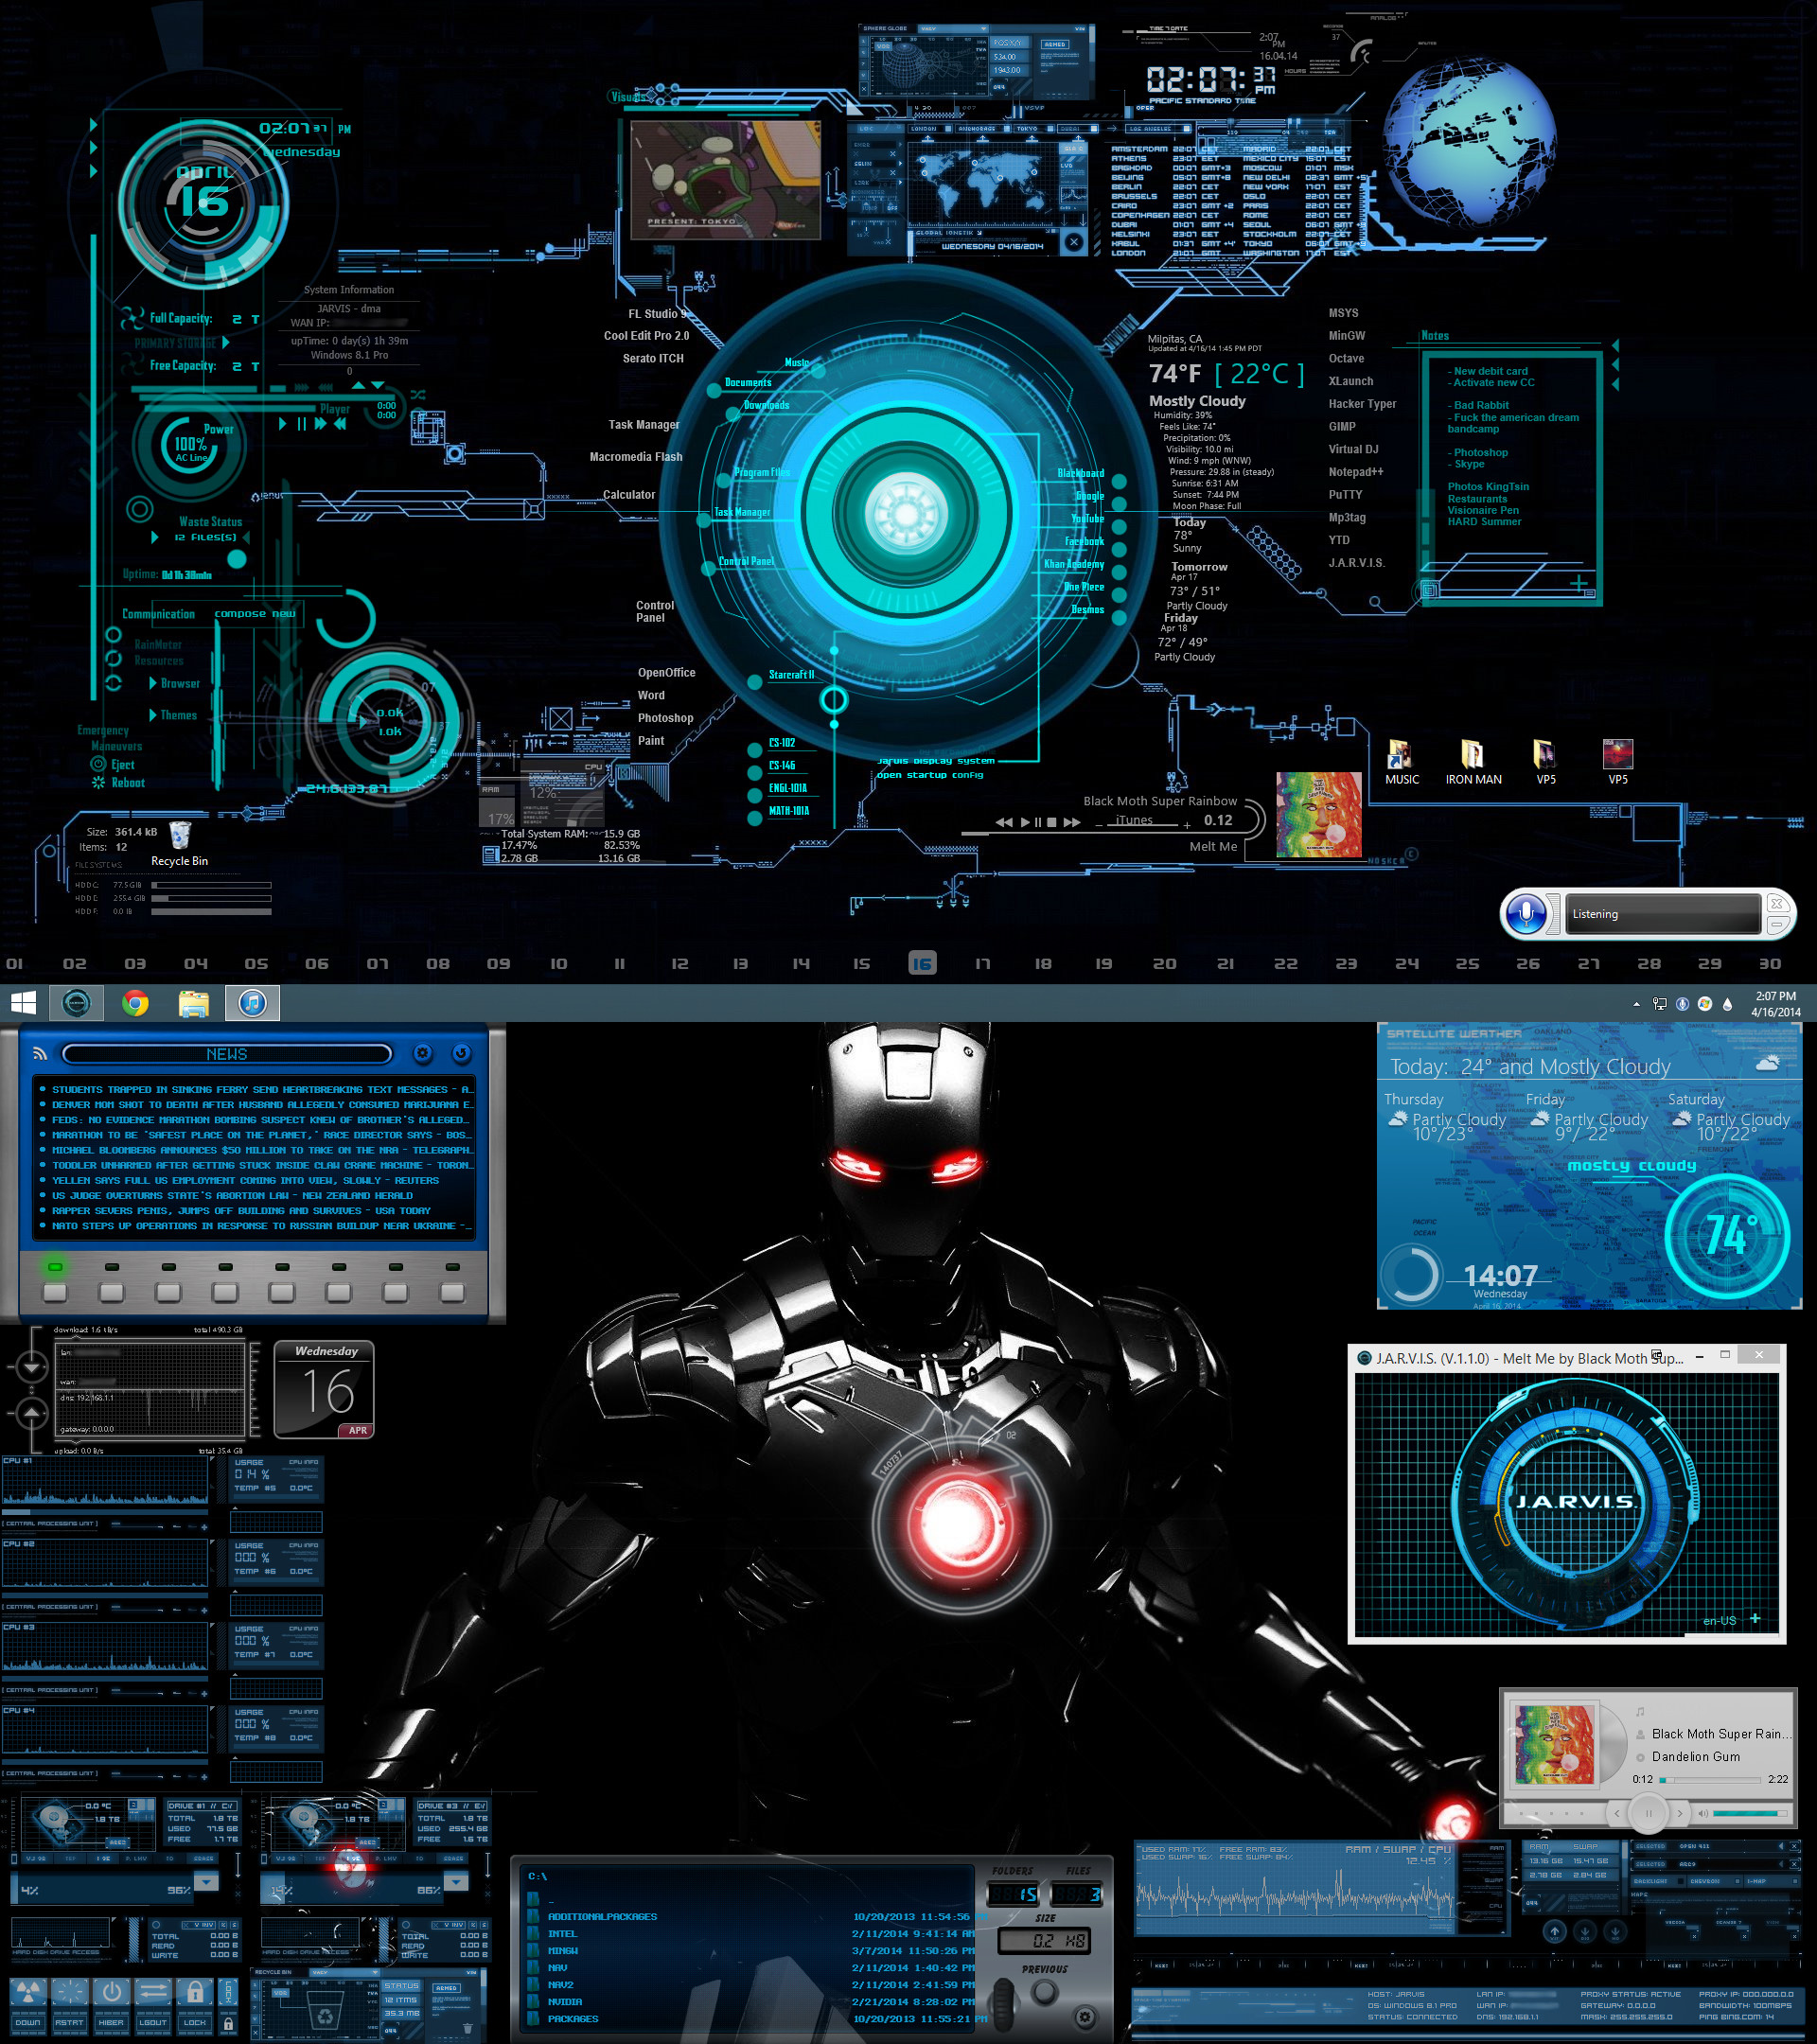 Second Screenshot: Desktop with just Rainmeter, iTunes, and J.A.R.V.I.S.  running.